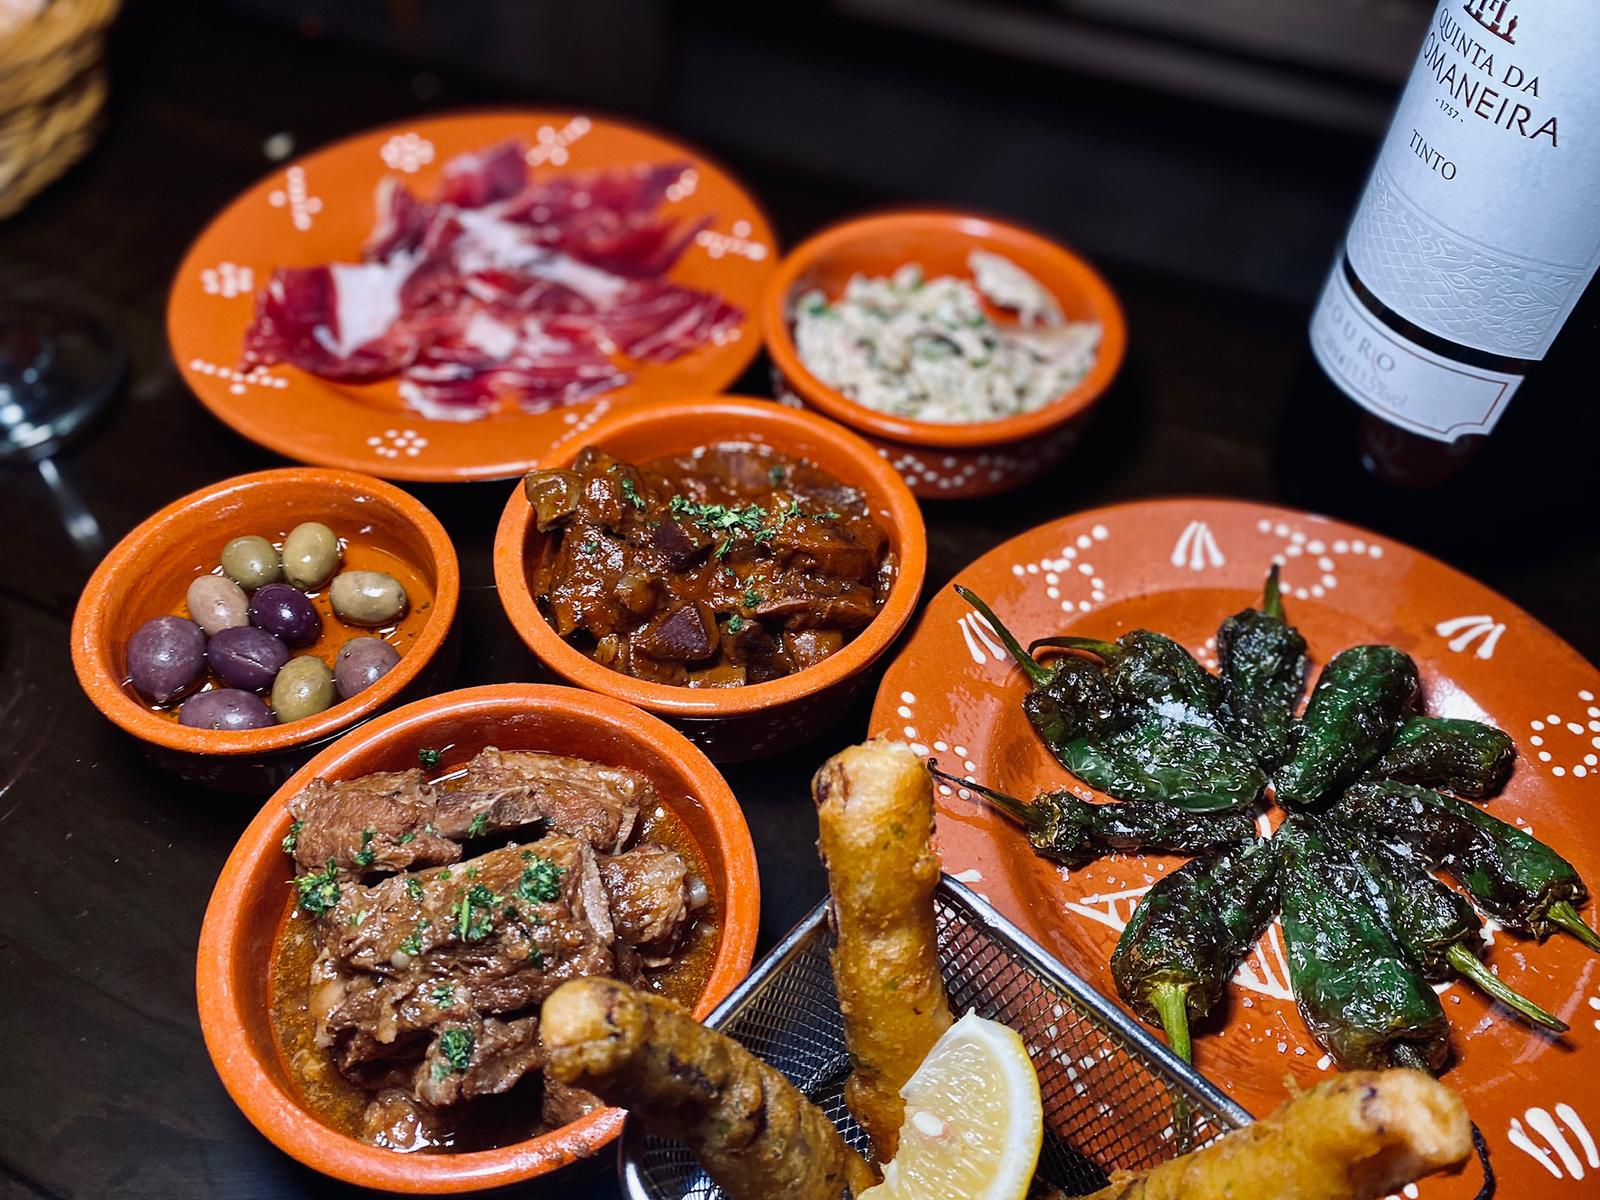 tapas at three sardines on the table macau lifestyle